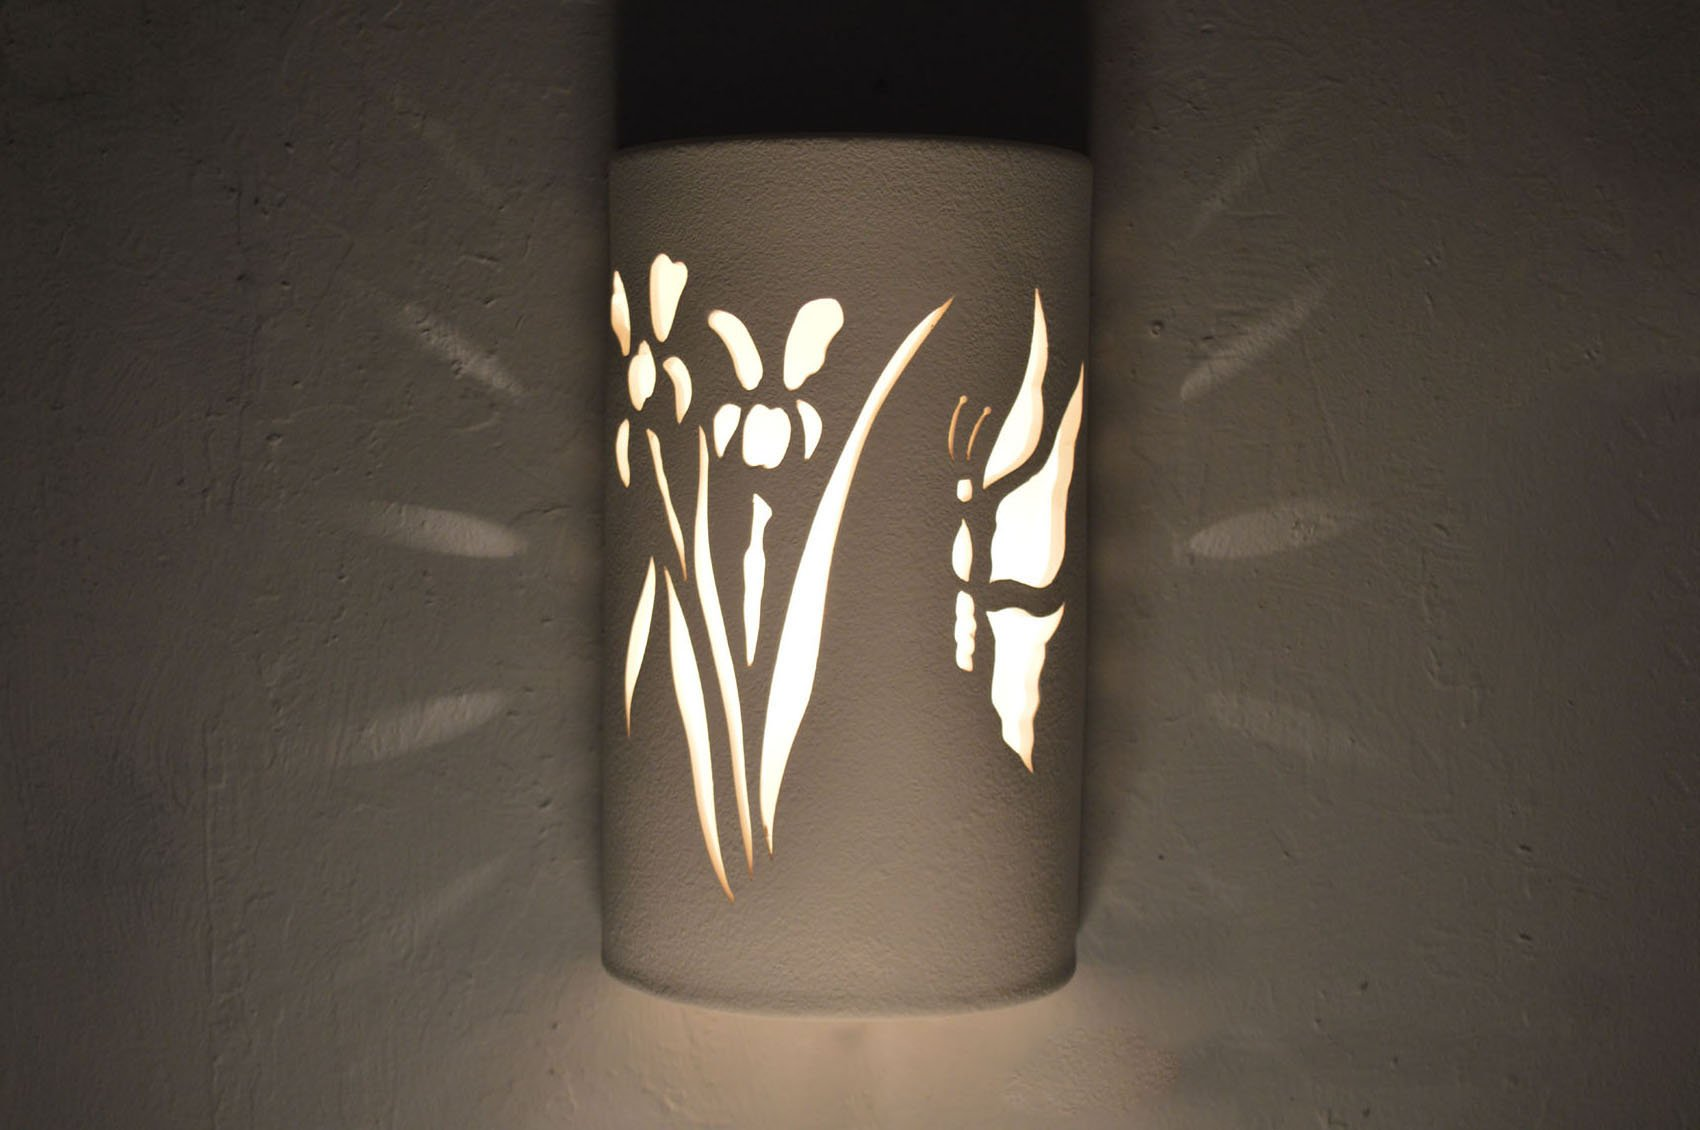 Closed Top-Dark Sky-Butterfly-Iris-Flower-Wall Sconce-White-Custom-Handcrafted-Porch-Indoor-Outdoor